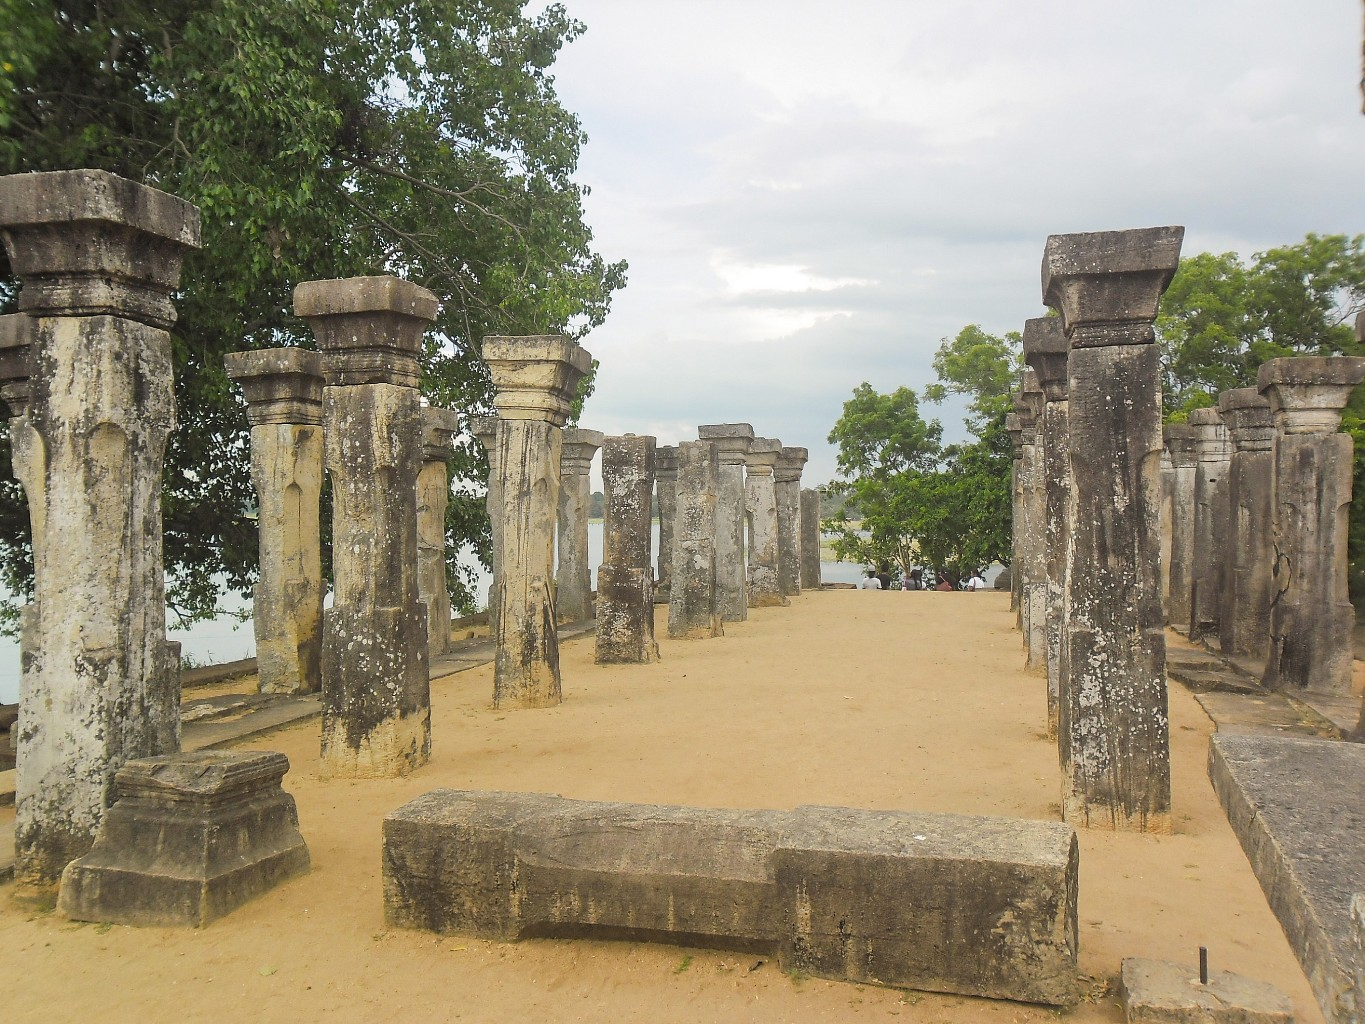 Council-Chamber-of-Nissankamalla-Ancient-City-of-Polonnaruwa-13